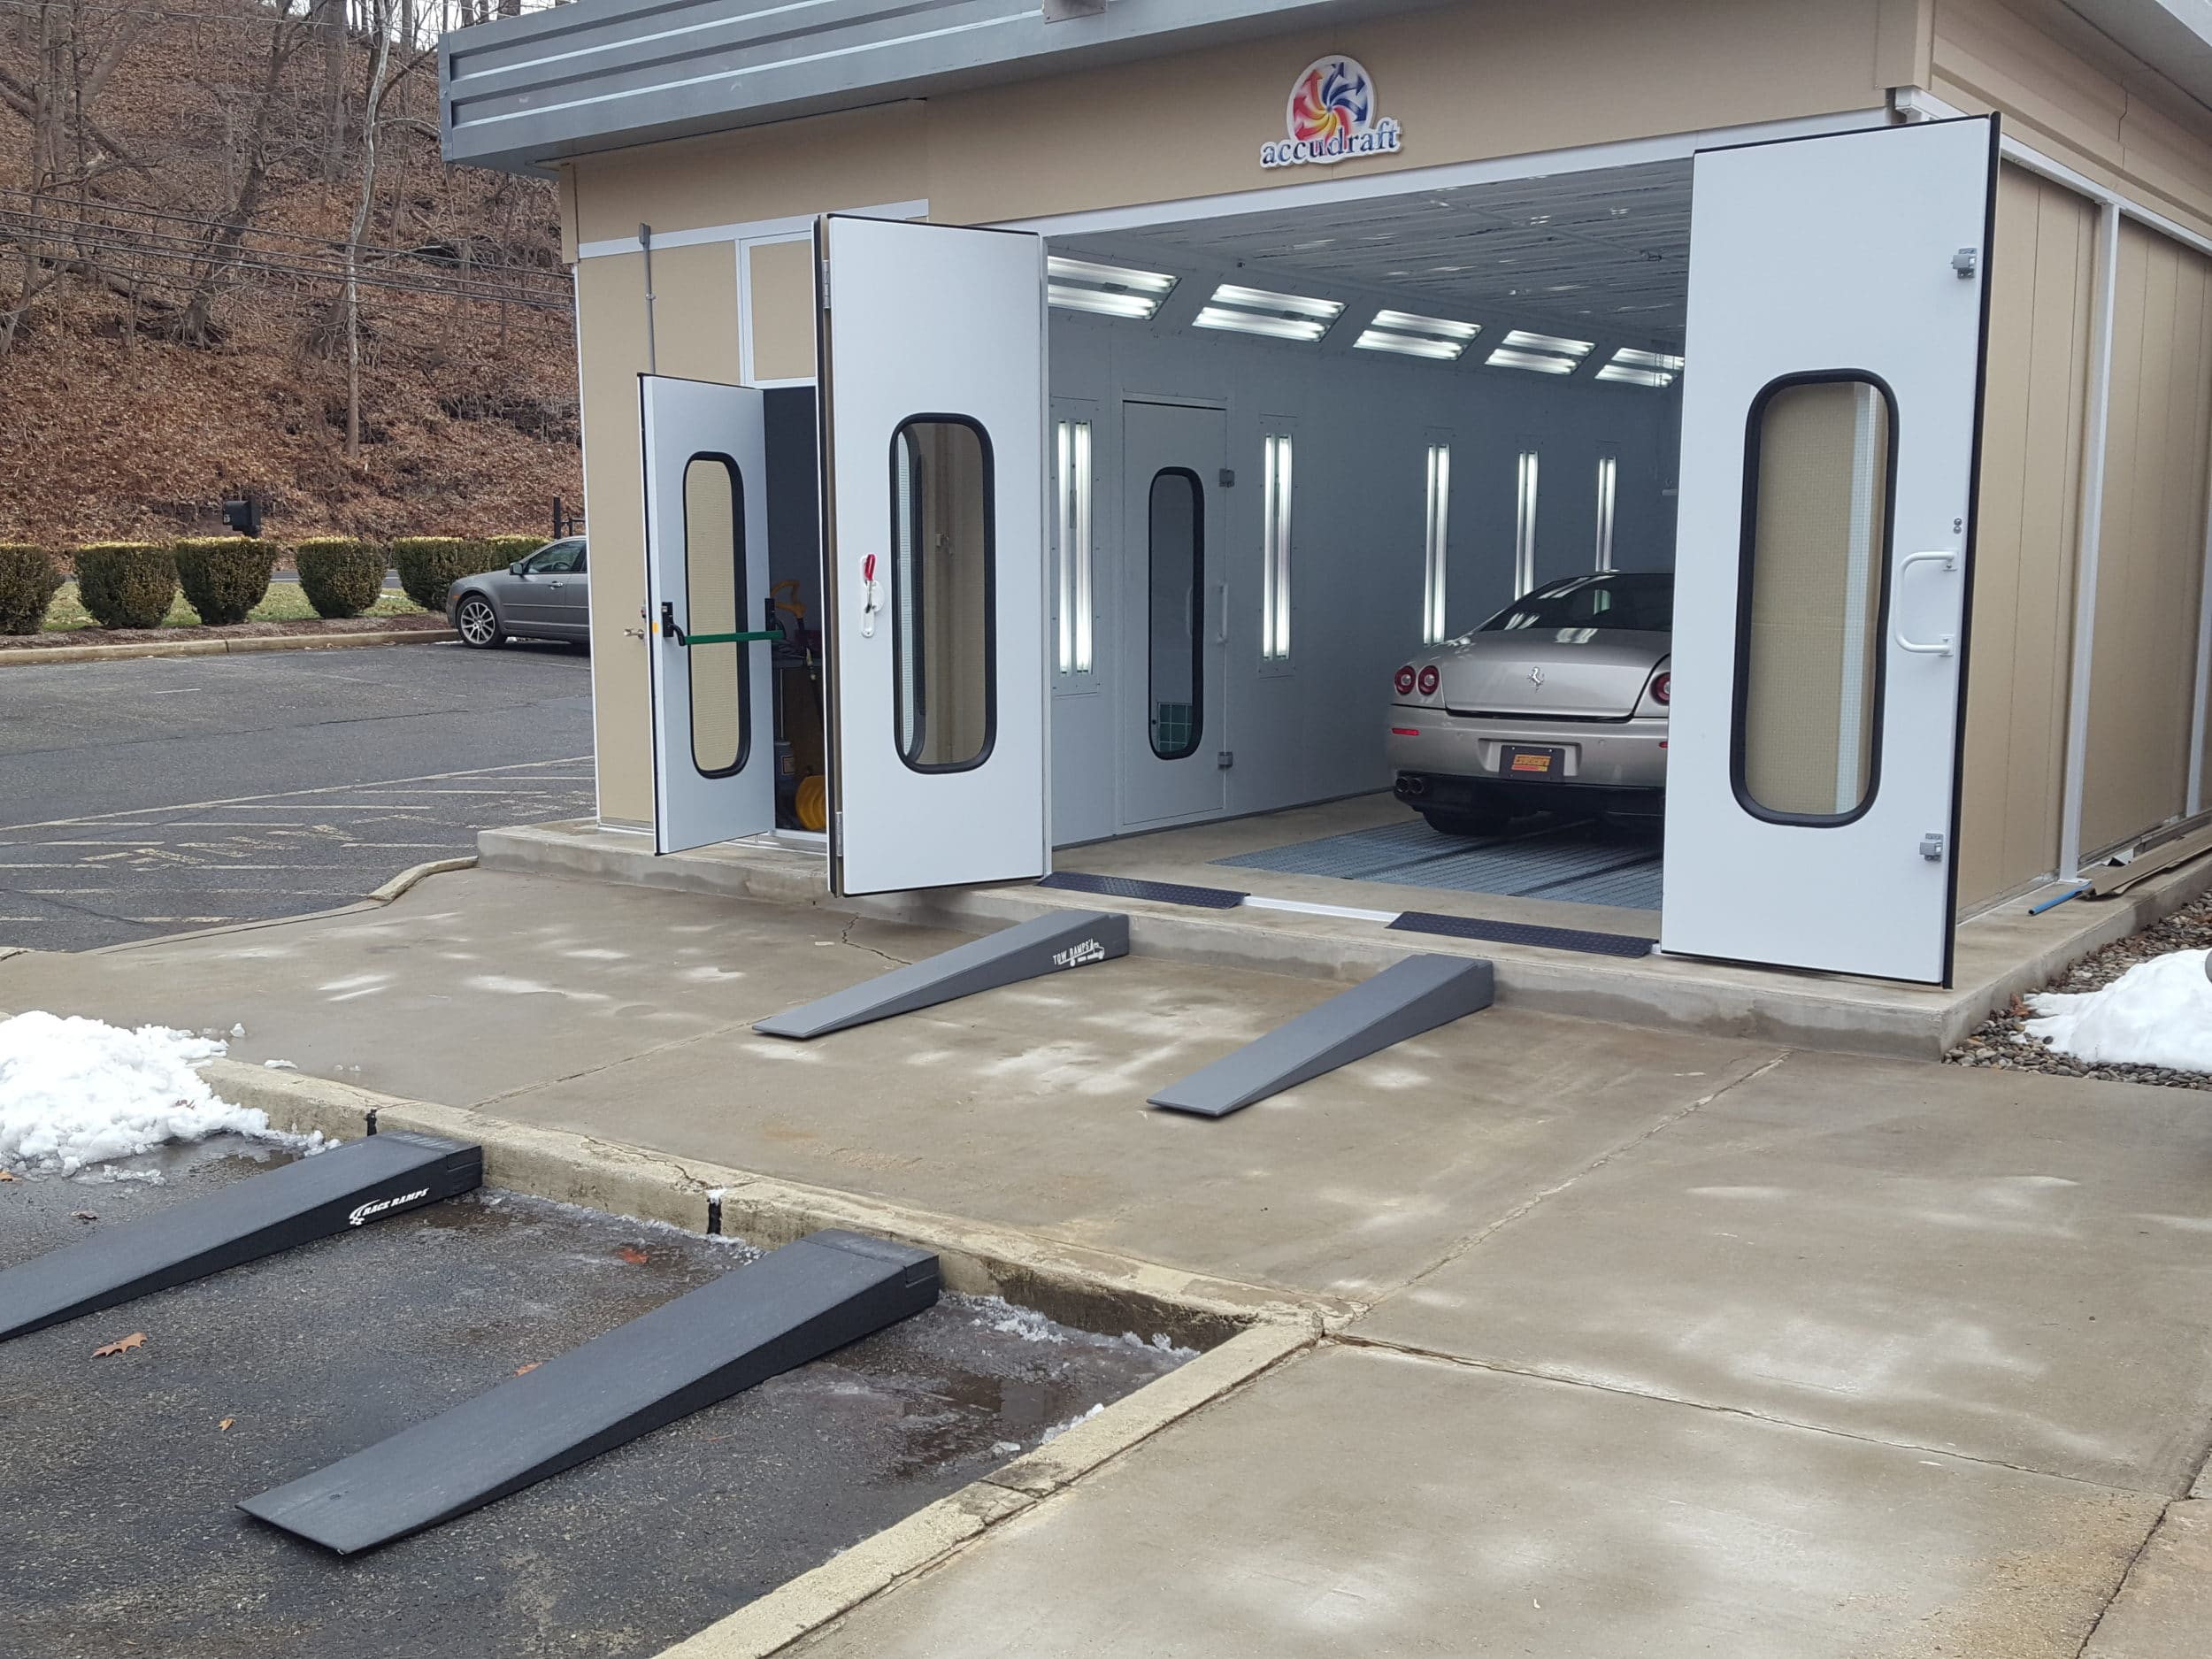 Exoticars USA - An Accudraft Paint Booth Customer Case Study